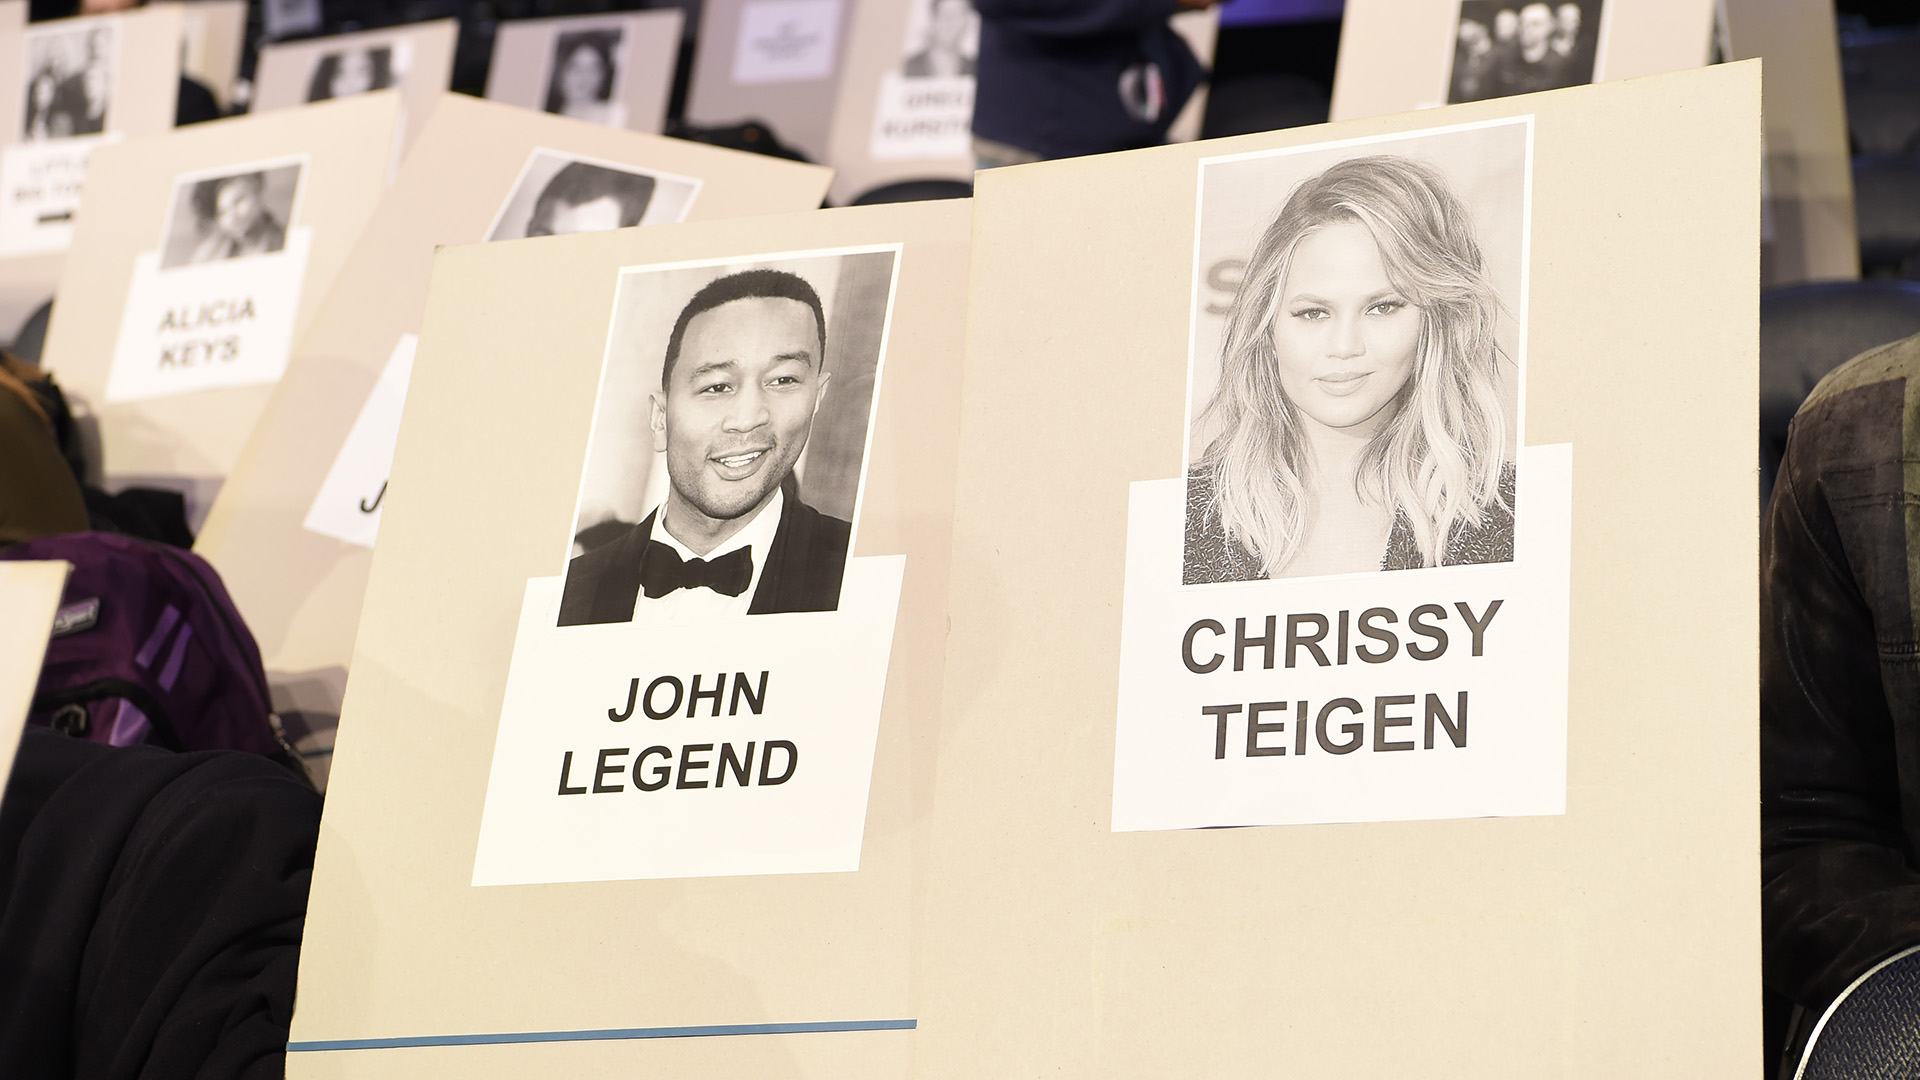 Here's where John Legend and Chrissy Teigen will take their seats on Music's Biggest Night®.